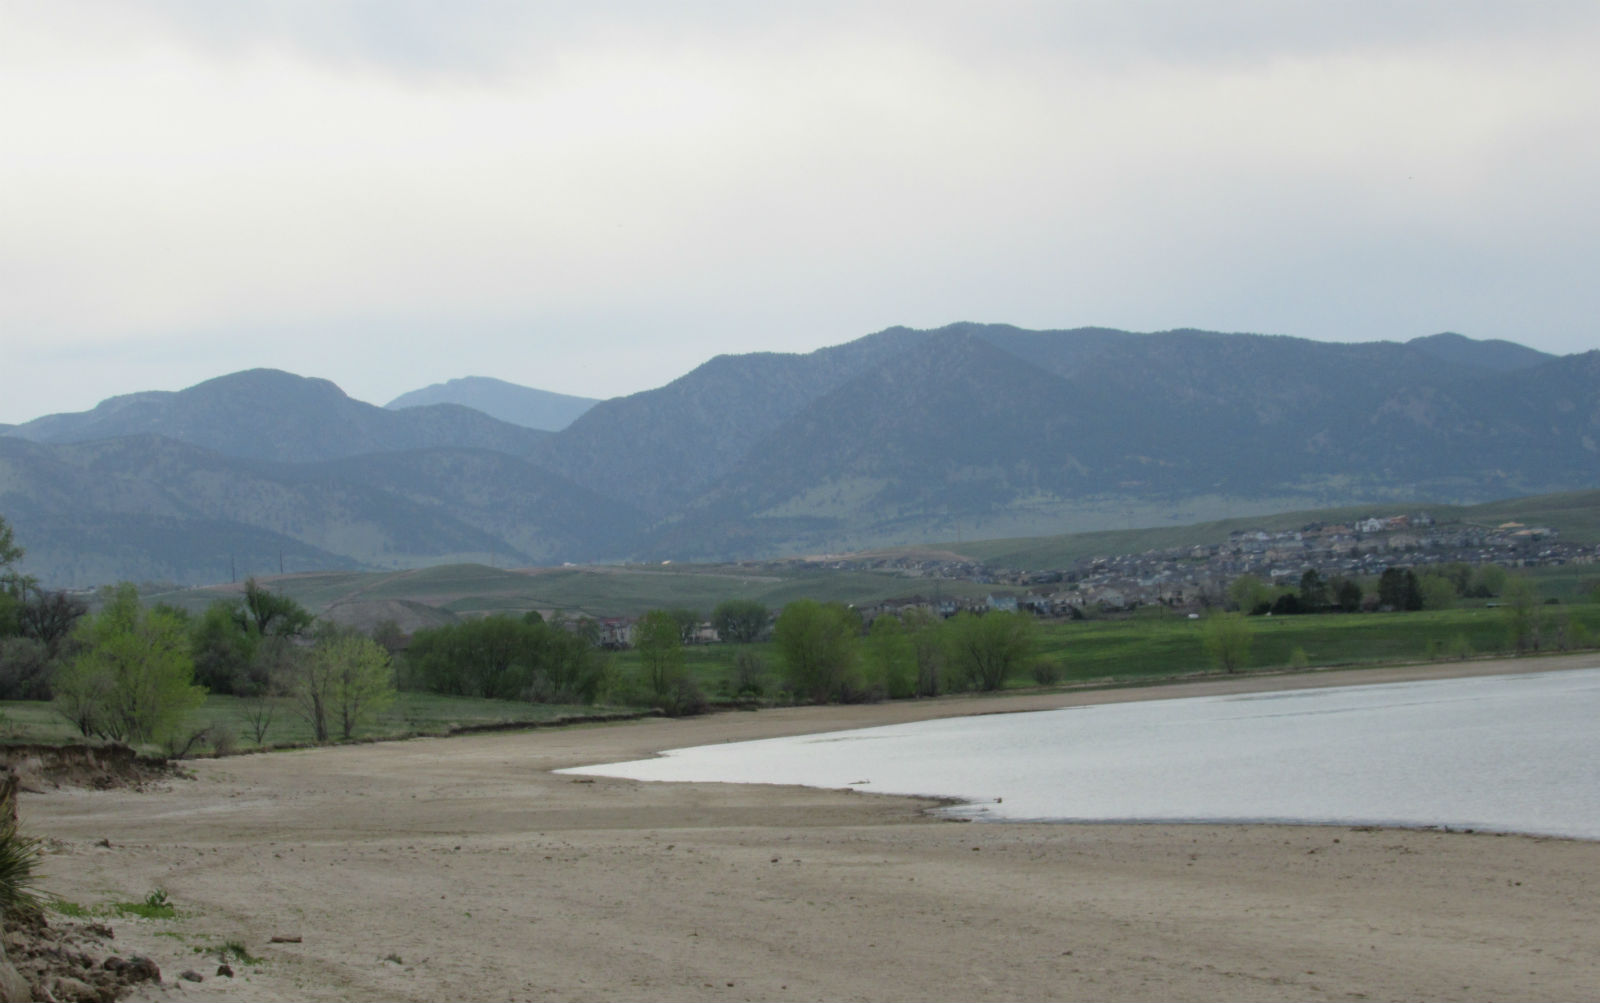 Standley Lake in Westminster. The ongoing drought, which shows no signs of easing this fall, has left Colorado's reservoirs at just 84 percent of average capacity, down from 112 percent of average last year at this time. Credit: Jerd Smith, Fresh Water News